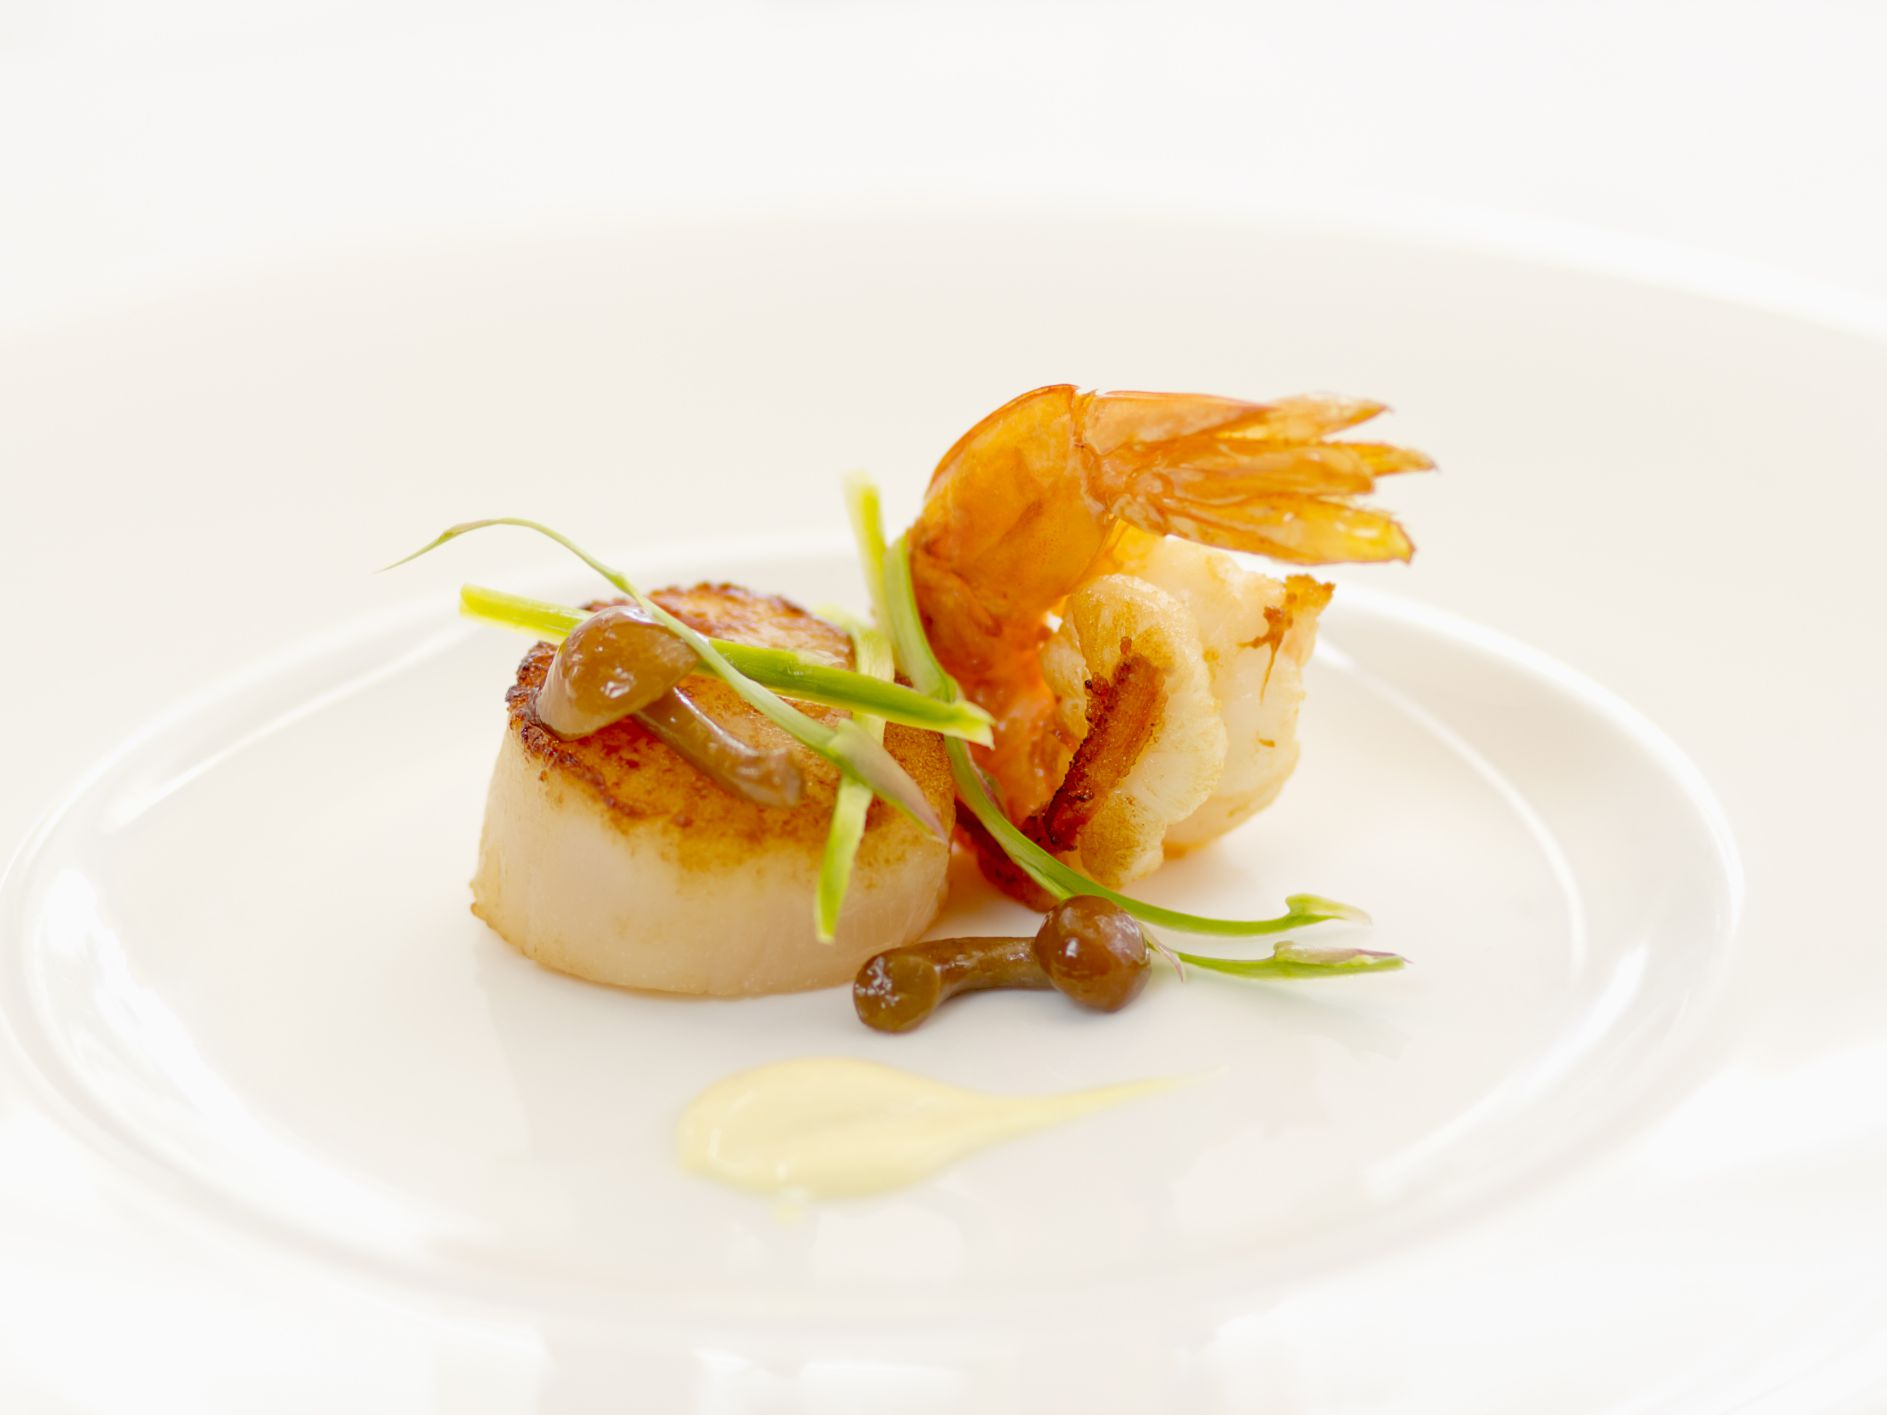 Scallops as Part of a Low-Cholesterol Diet